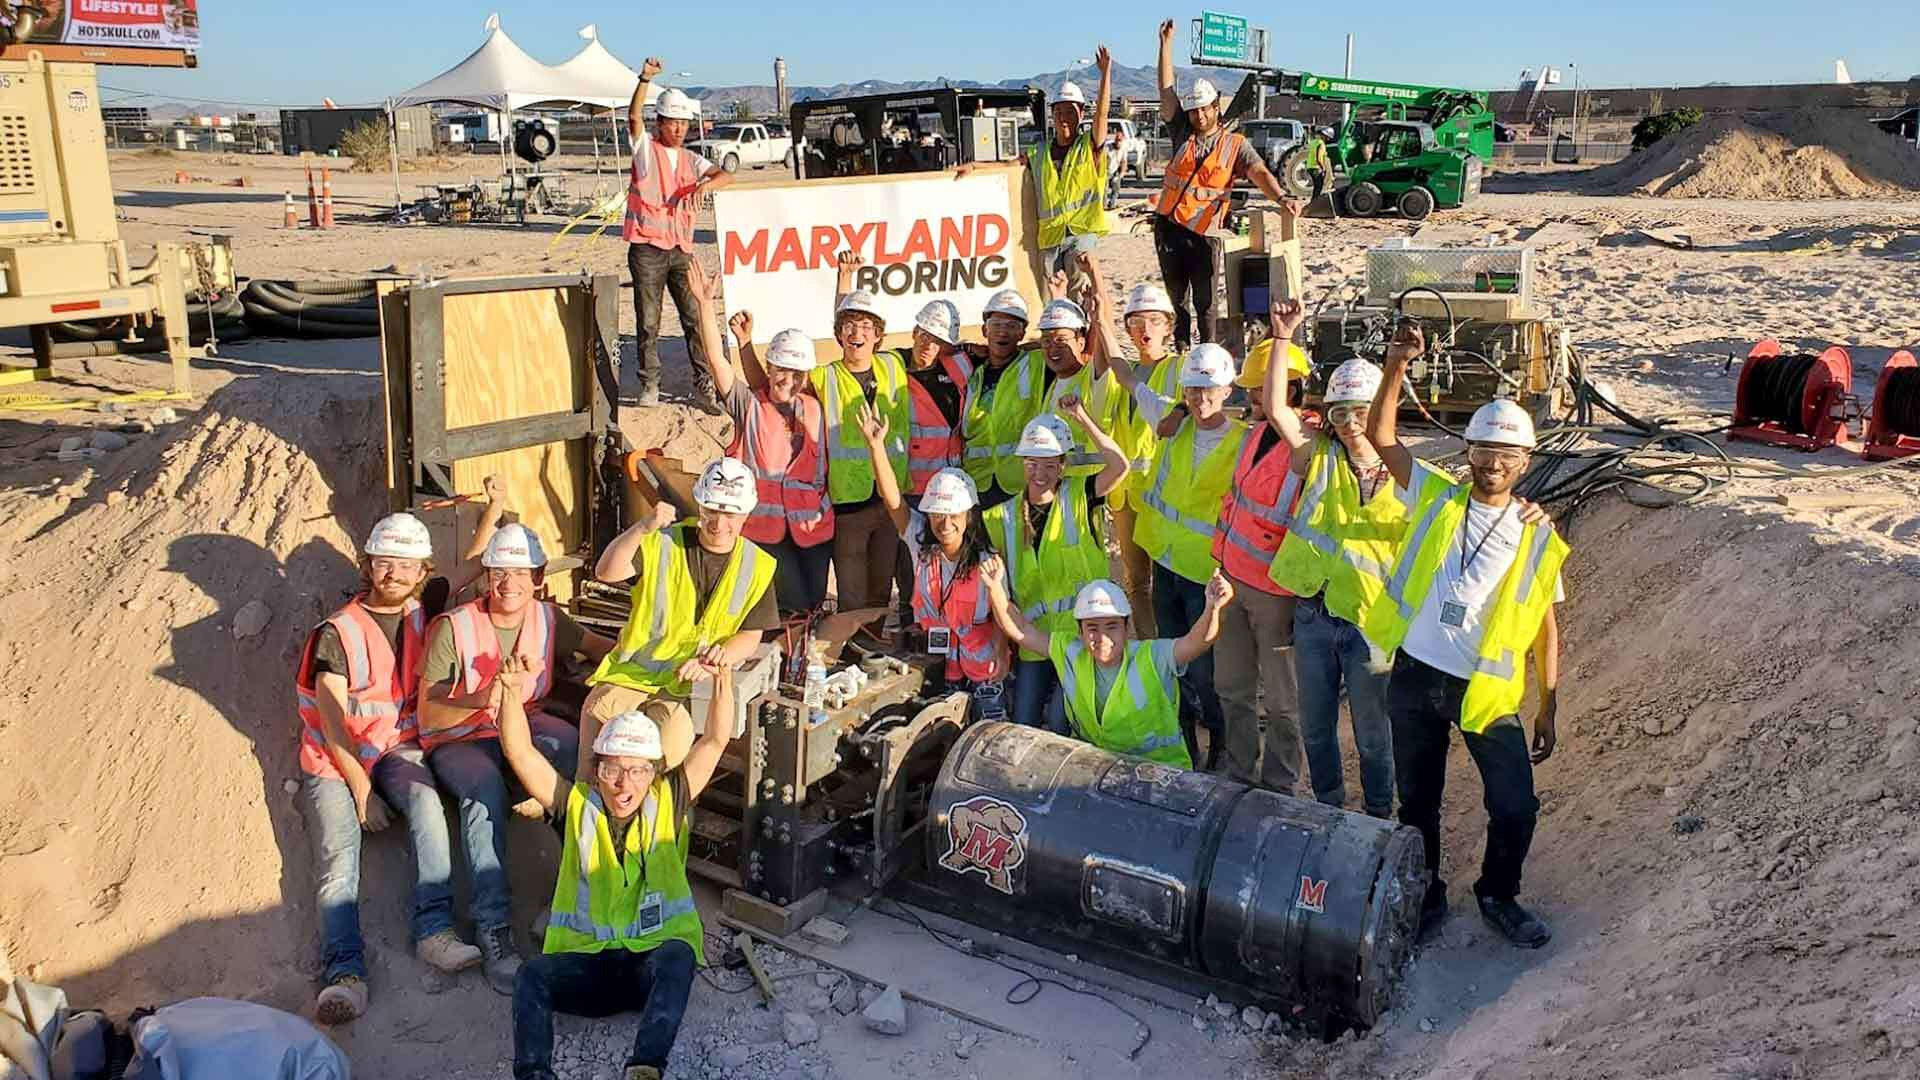 UMD Team Wins Safety Award in the Boring Company's International Student Competition